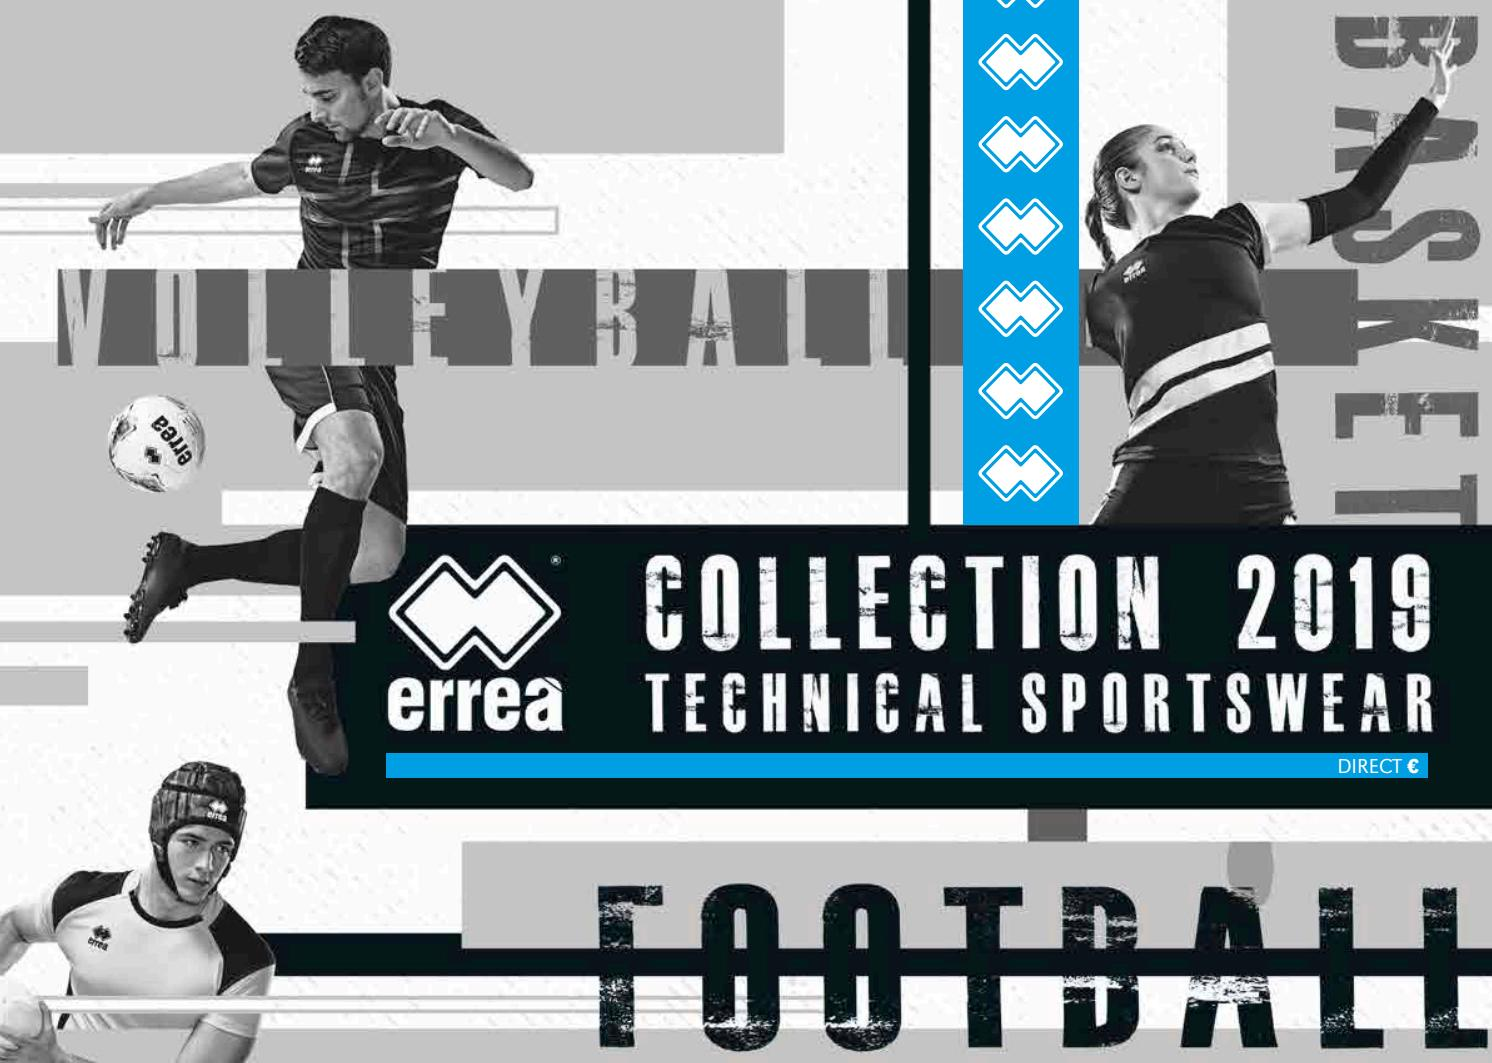 Sport 2019 Activity Catalogue Issuu By Errea knPwO0